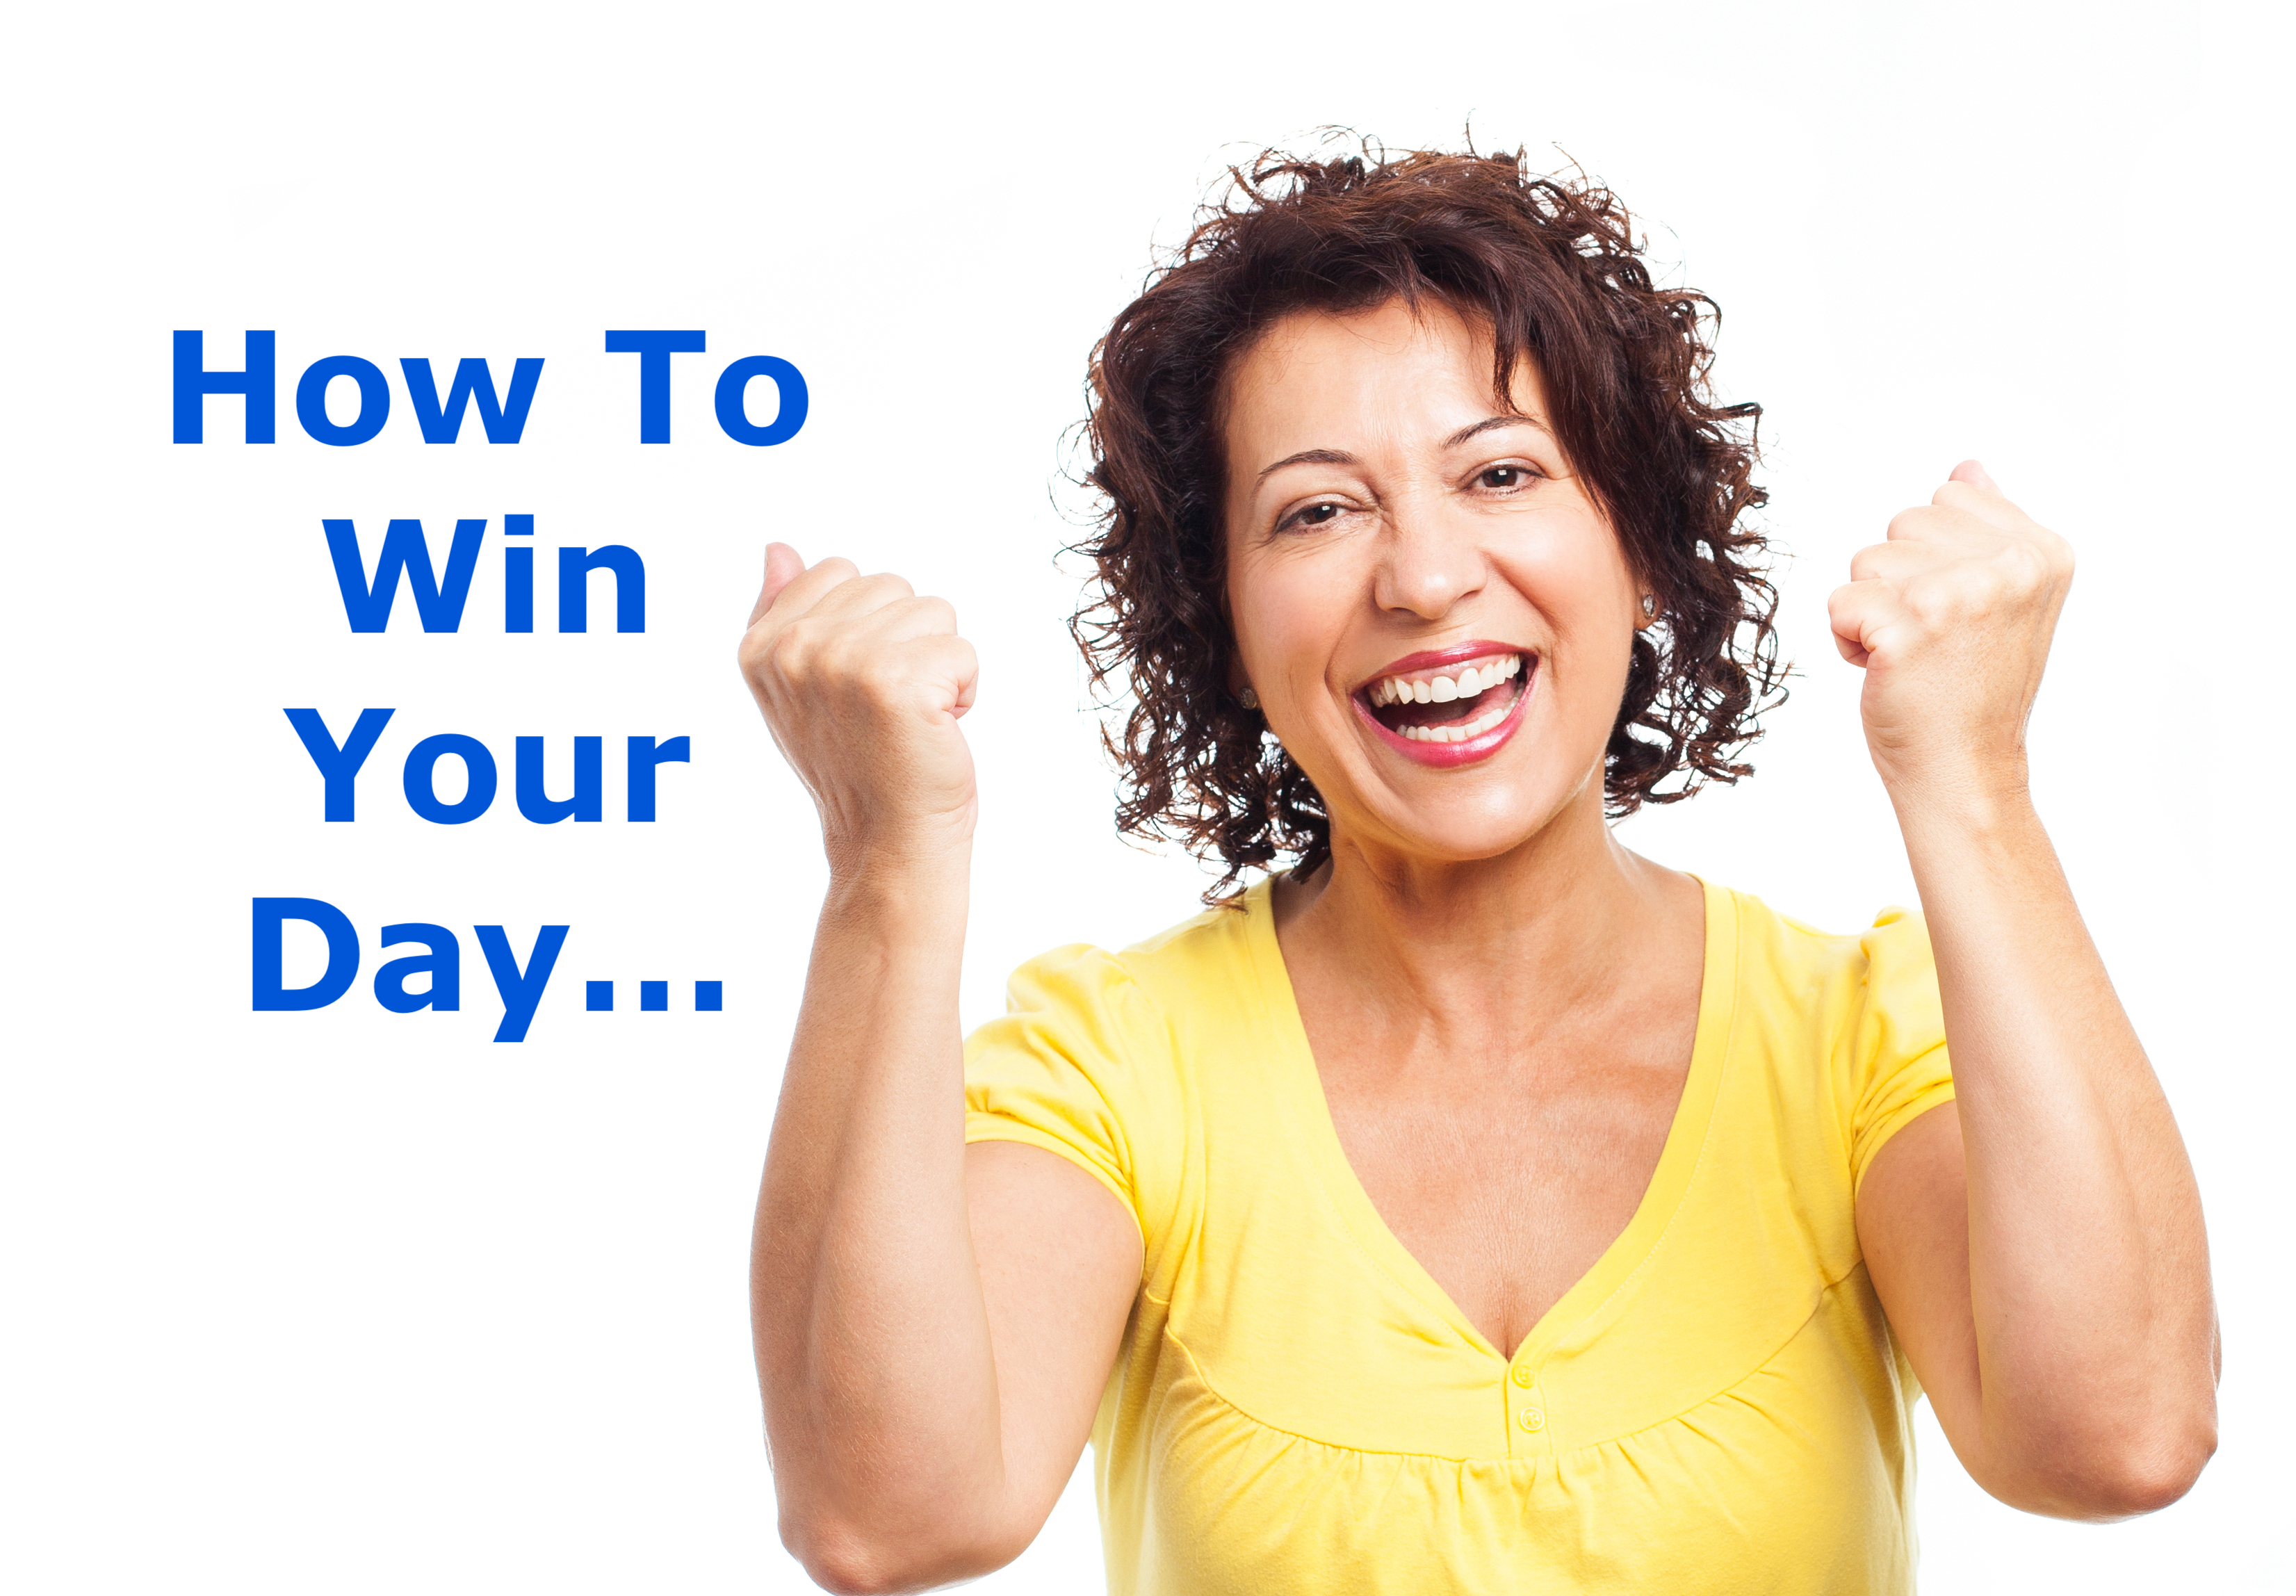 How to Win Your Day